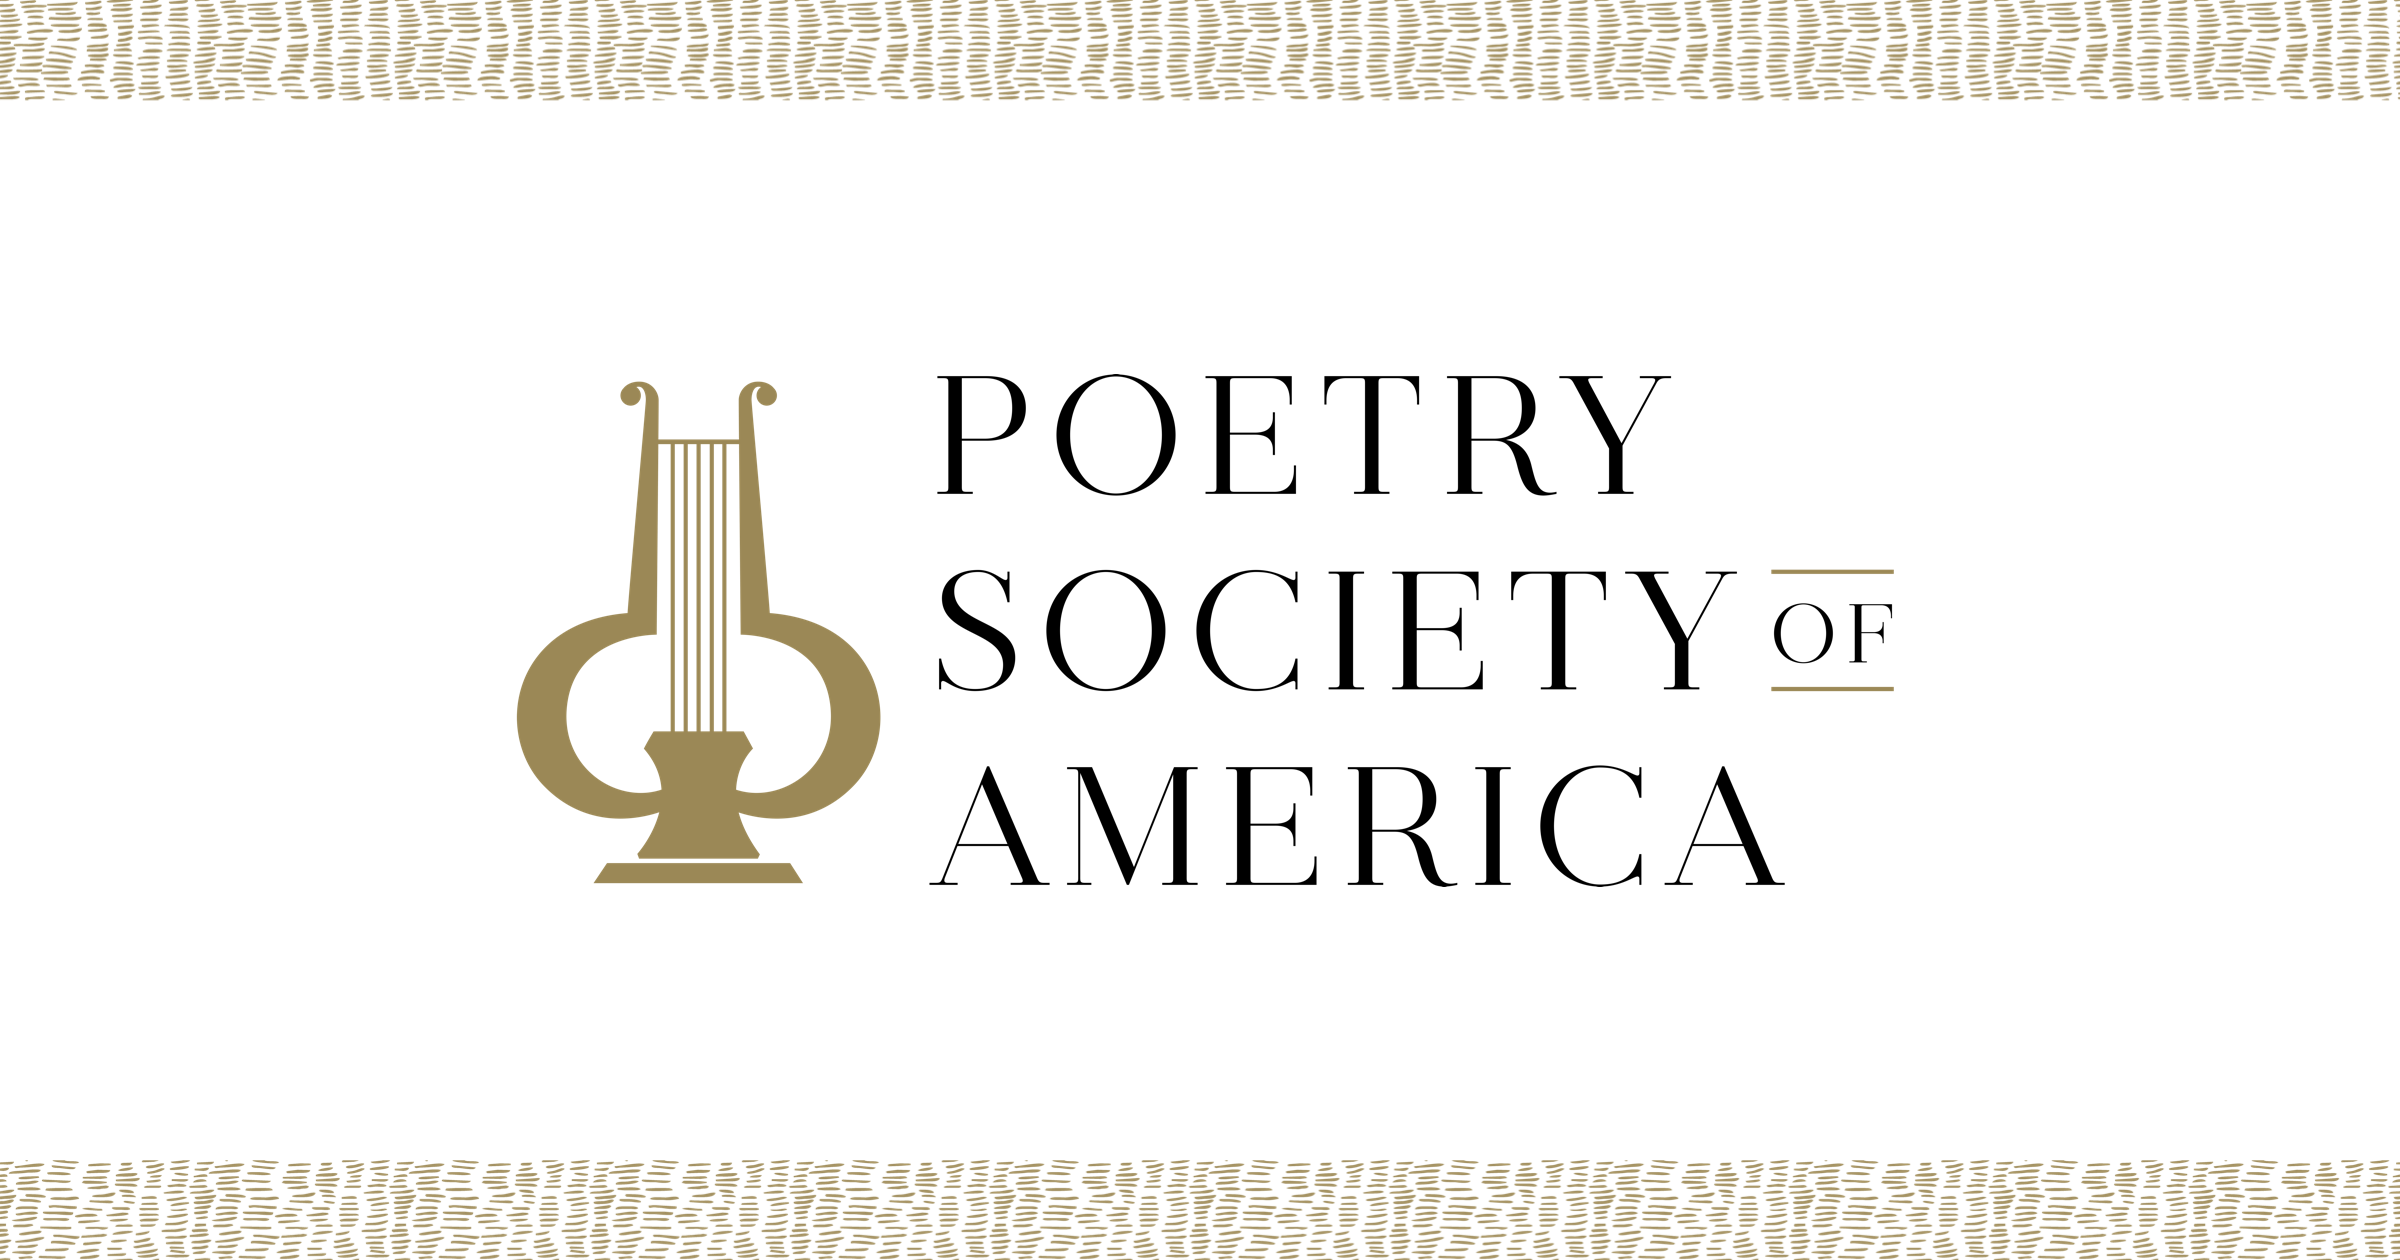 Poetry Society of America offers annual awards. Deadline to apply: December 31